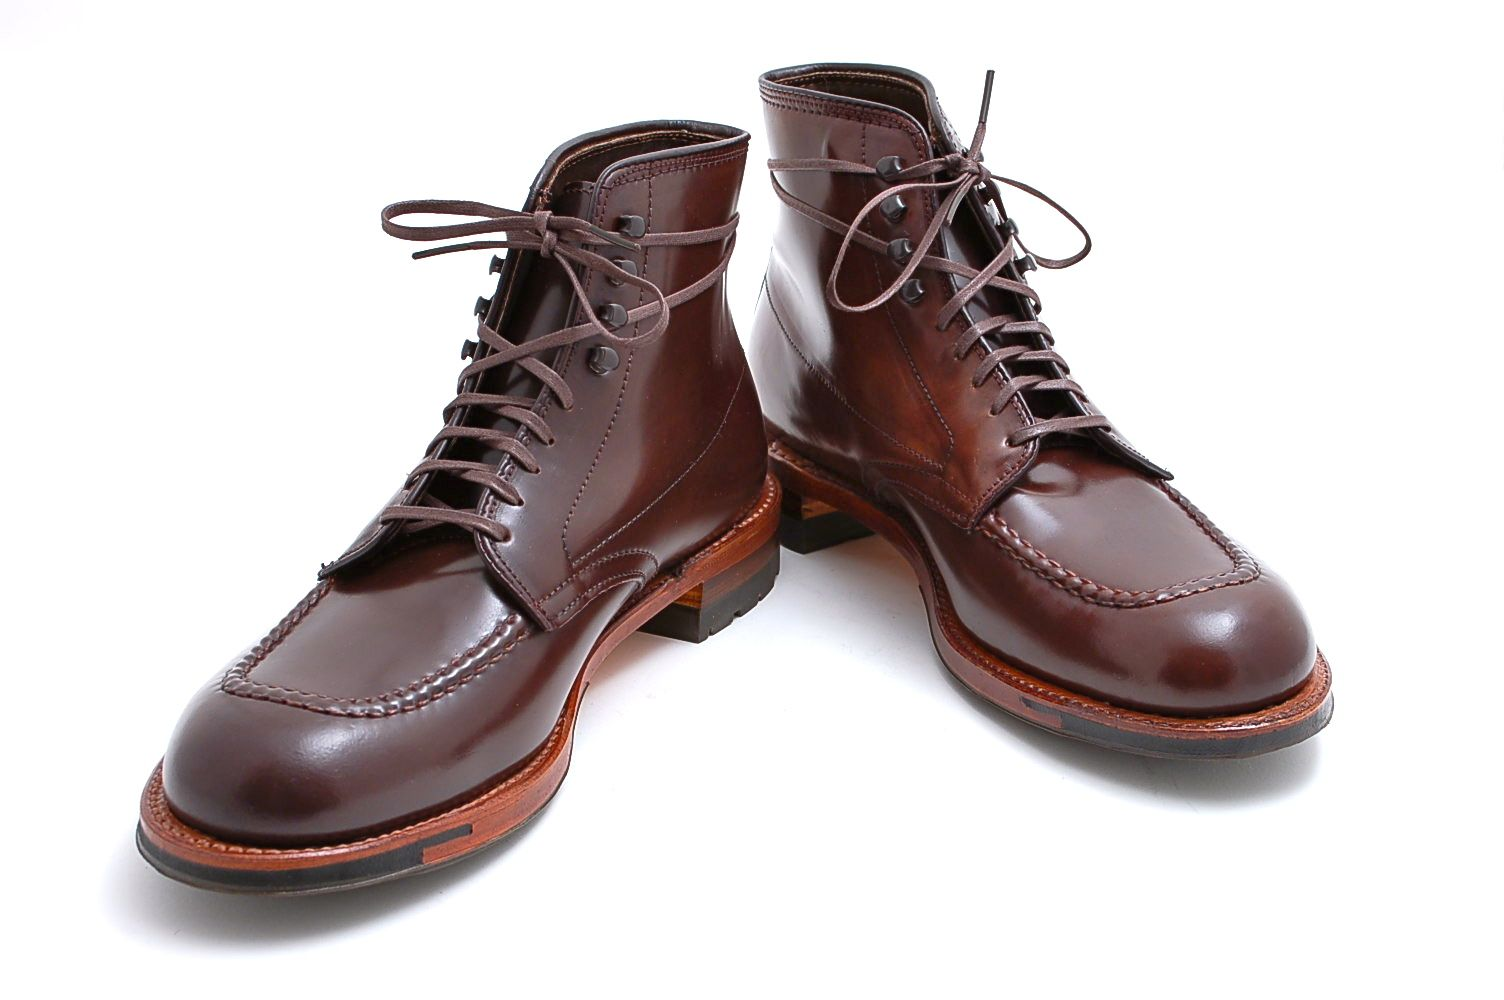 alden shell cordovan indy boots i like your shoes